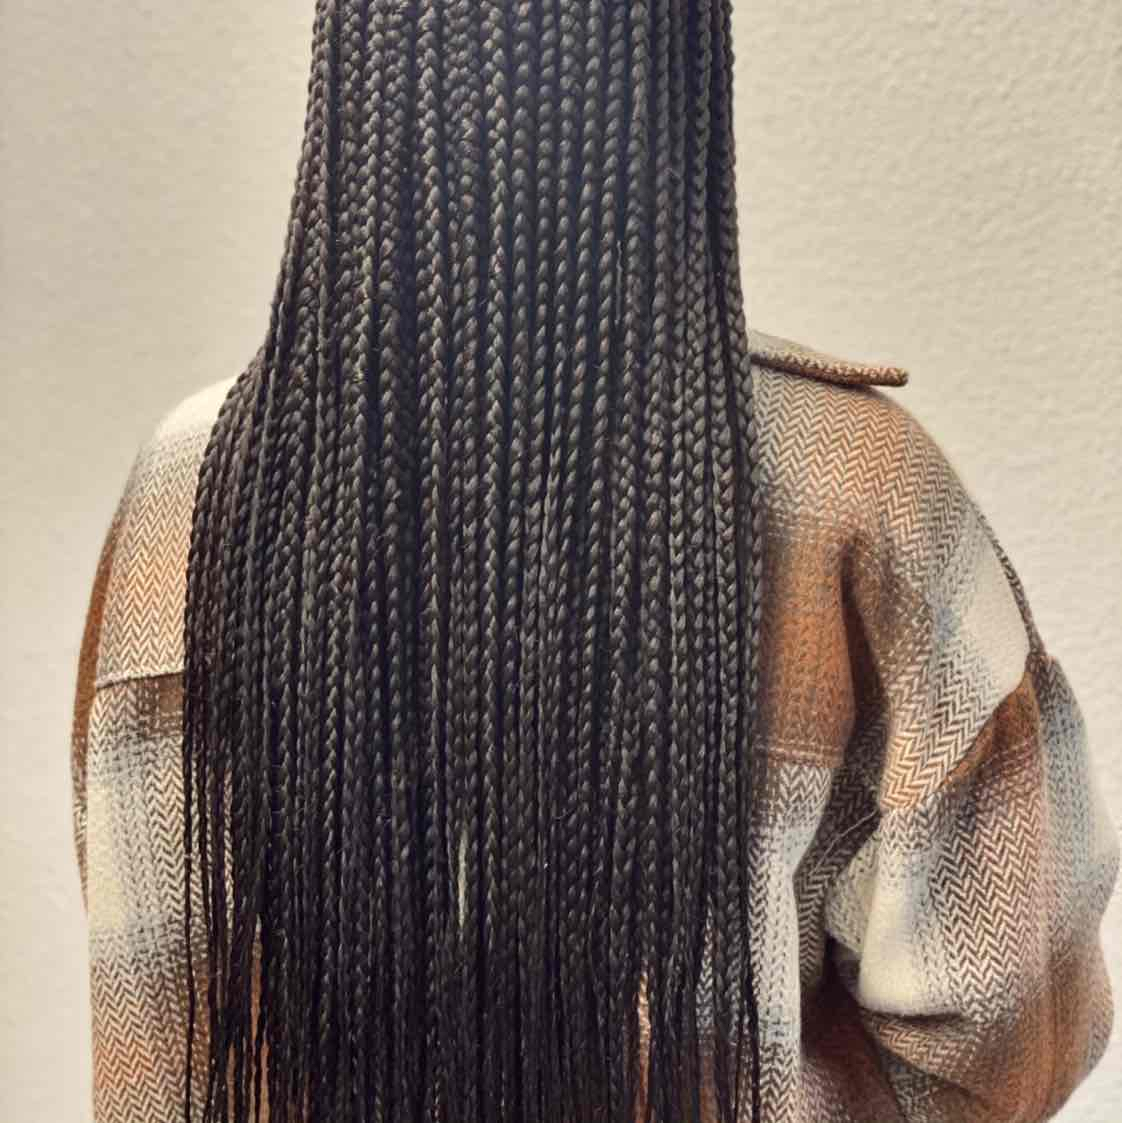 salon de coiffure afro tresse tresses box braids crochet braids vanilles tissages paris 75 77 78 91 92 93 94 95 RIJOWNWT